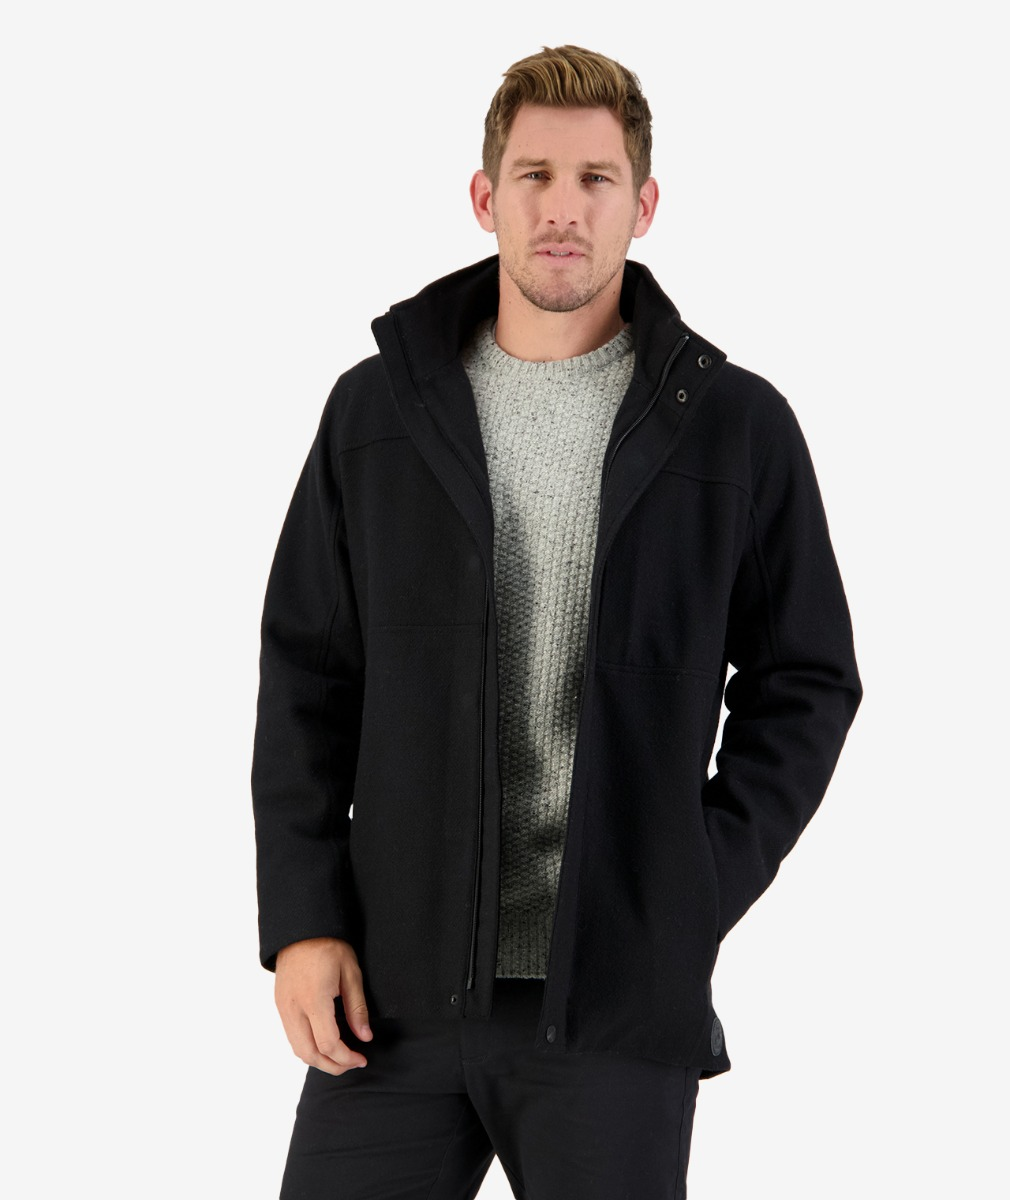 Richmond Rd Coat in Black Tweed